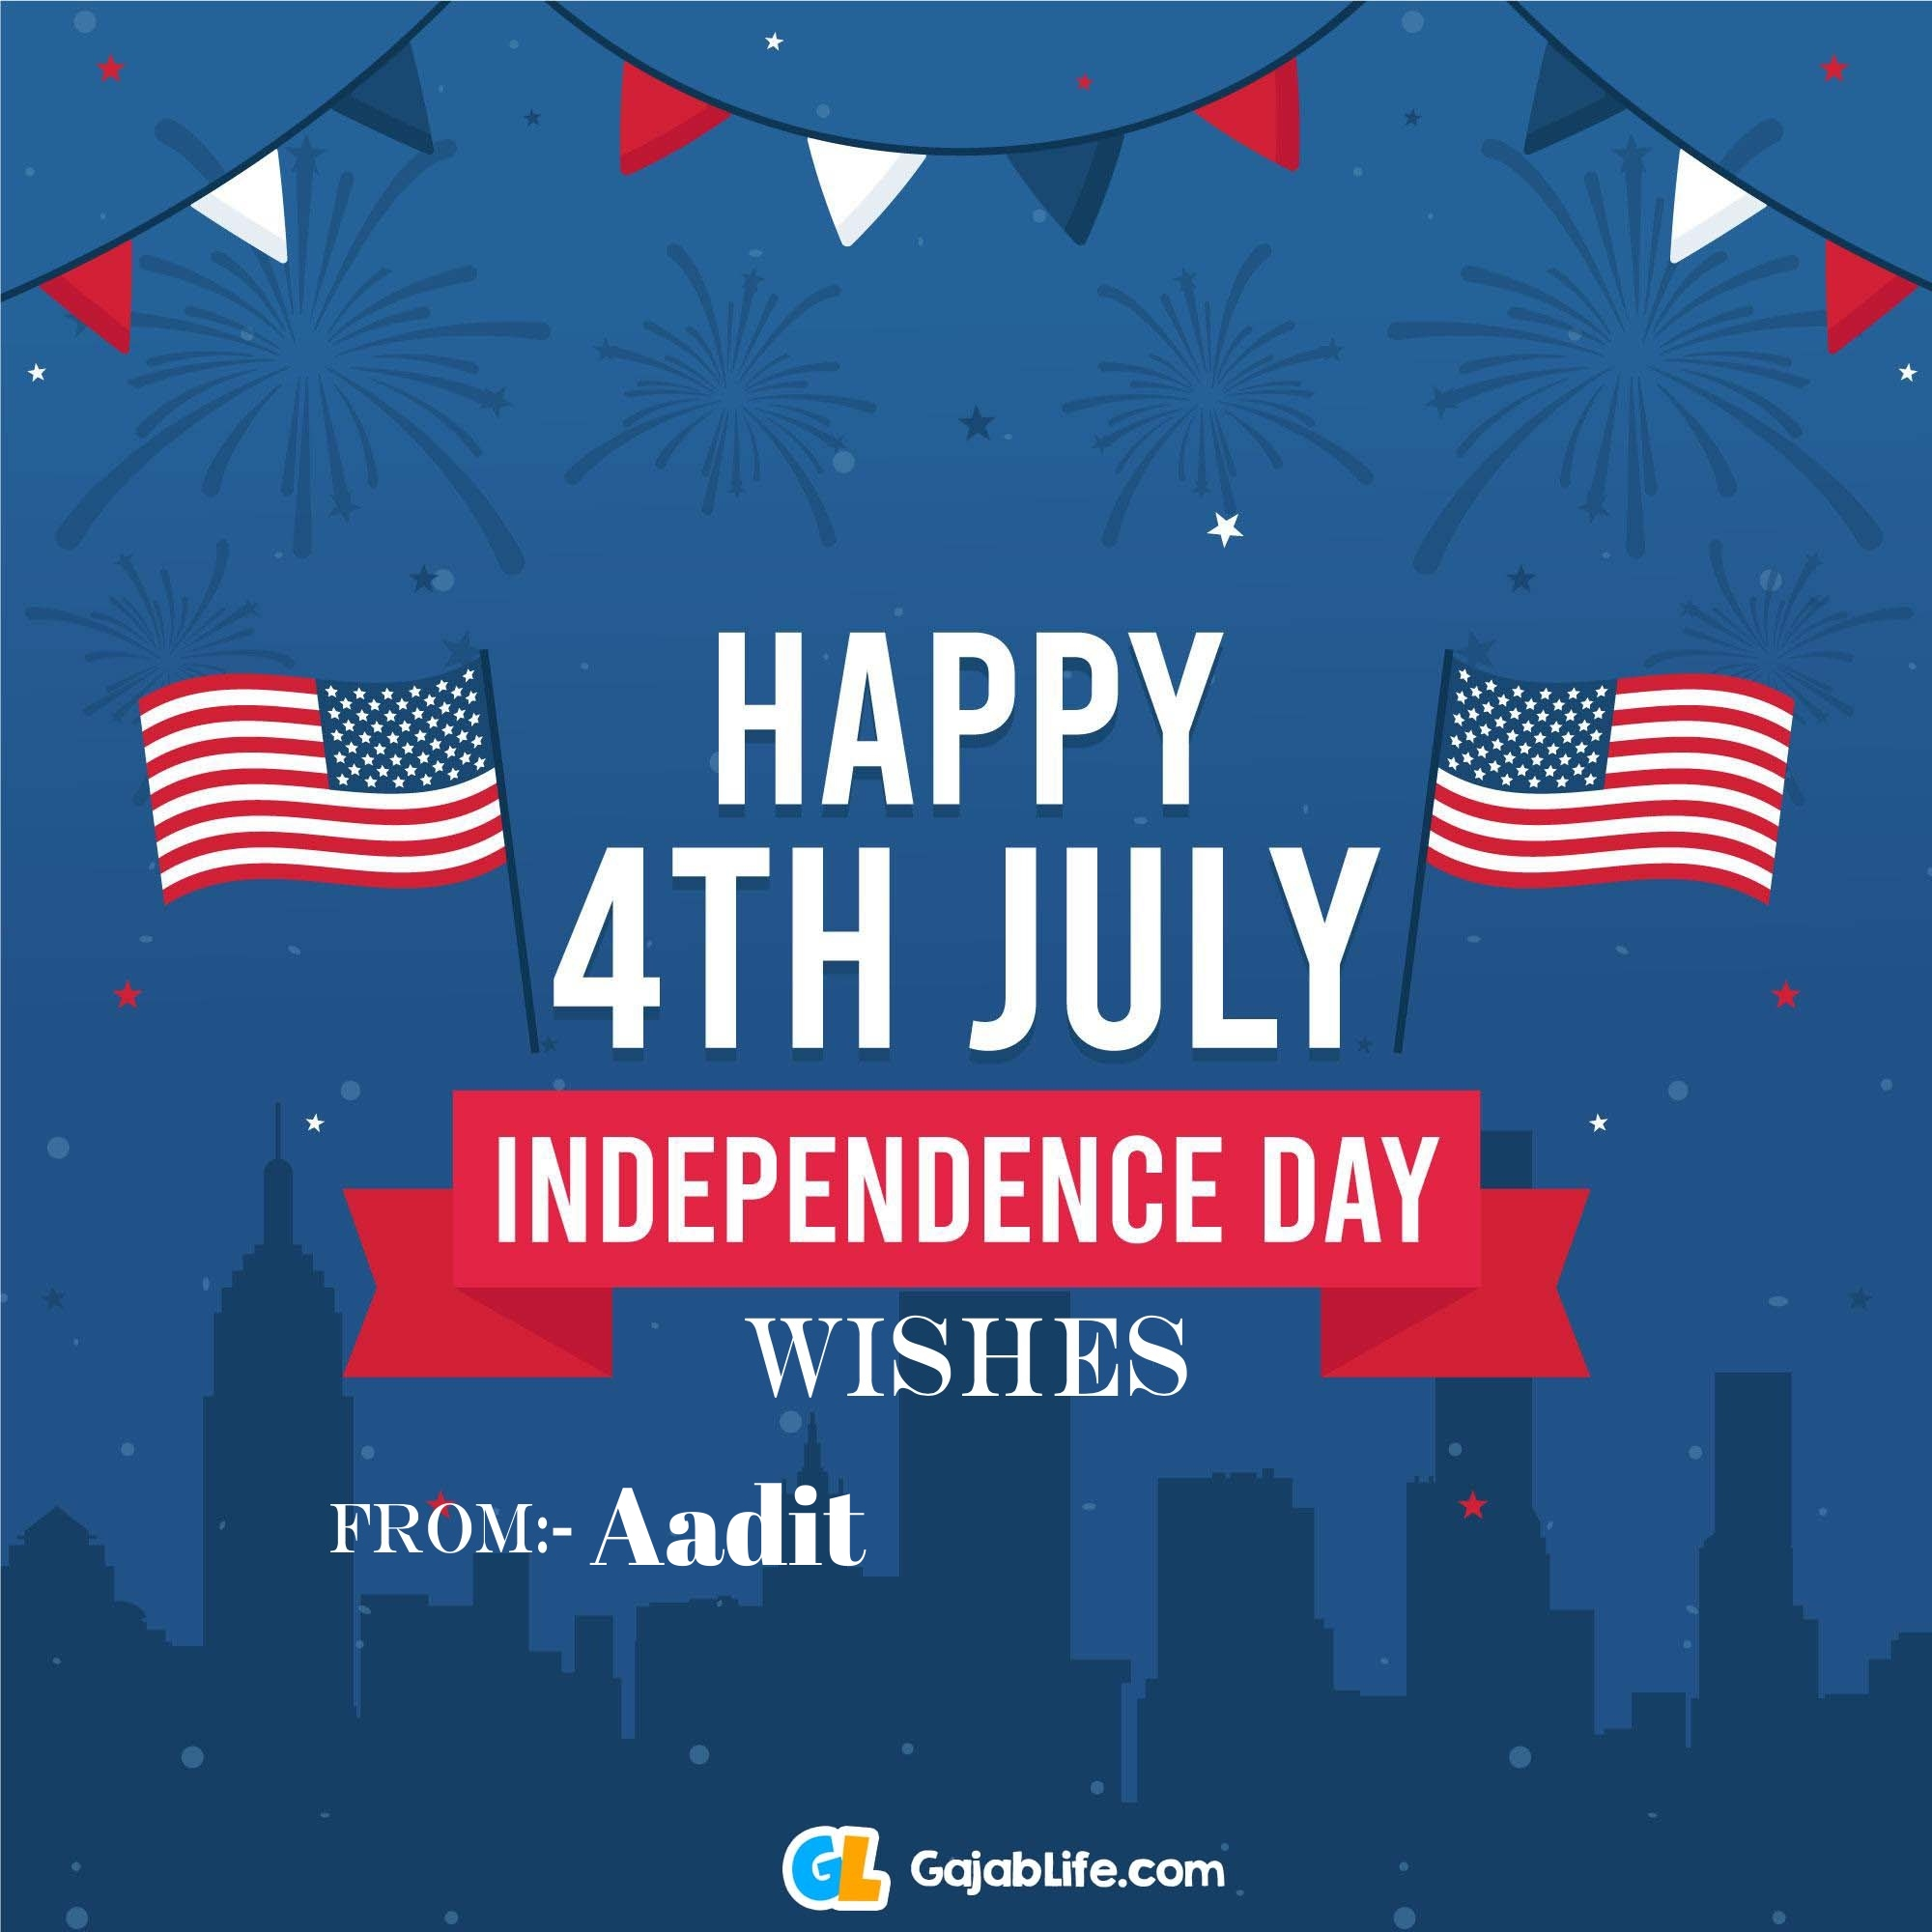 Aadit happy independence day united states of america images